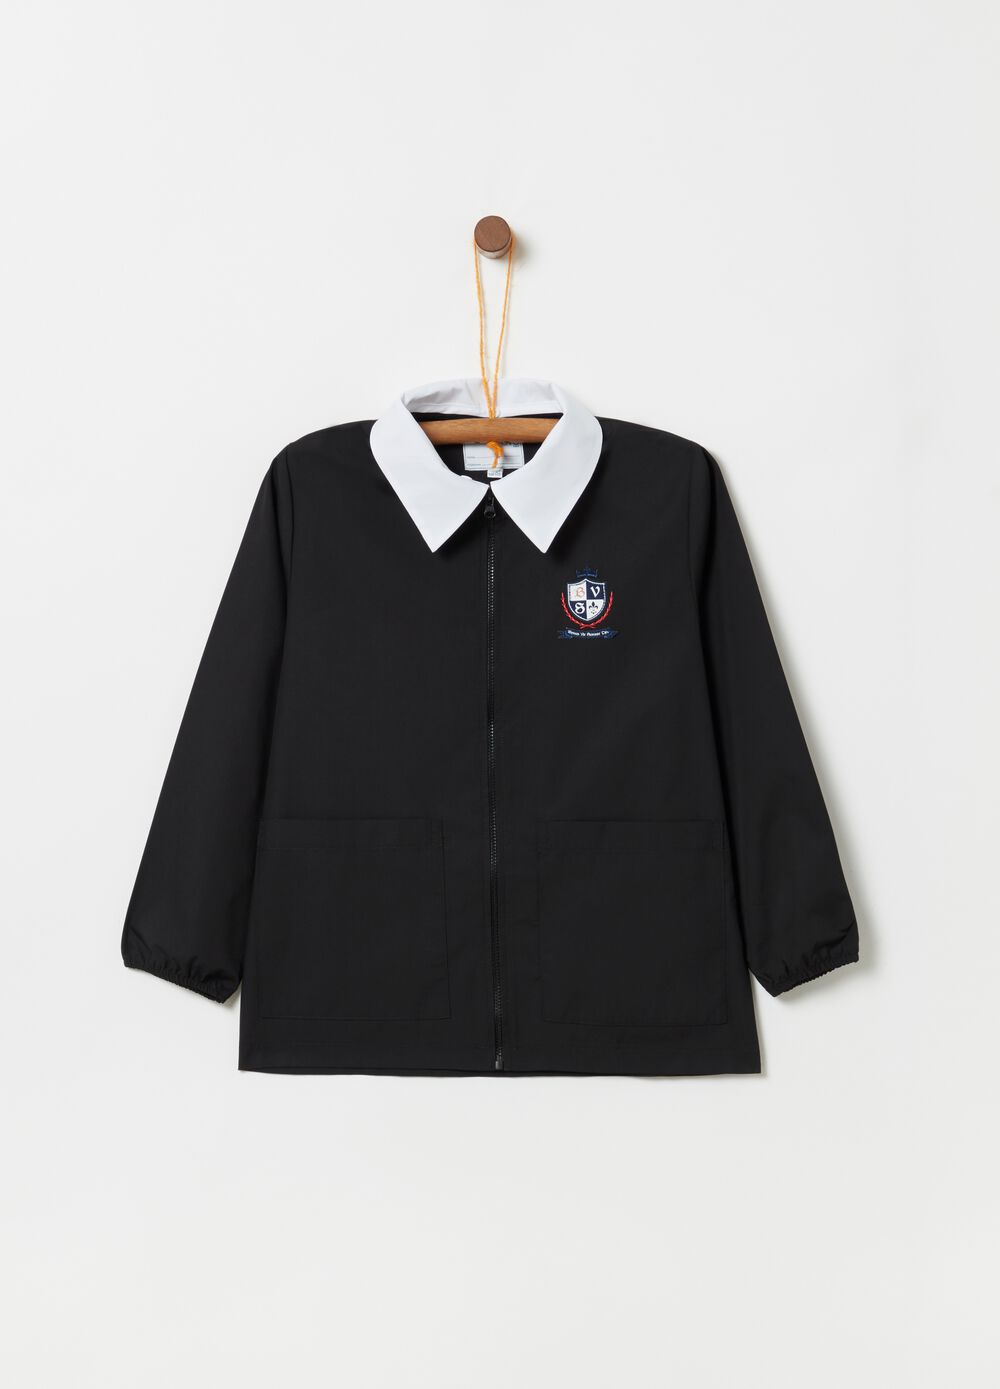 School smock with zip and herald stem